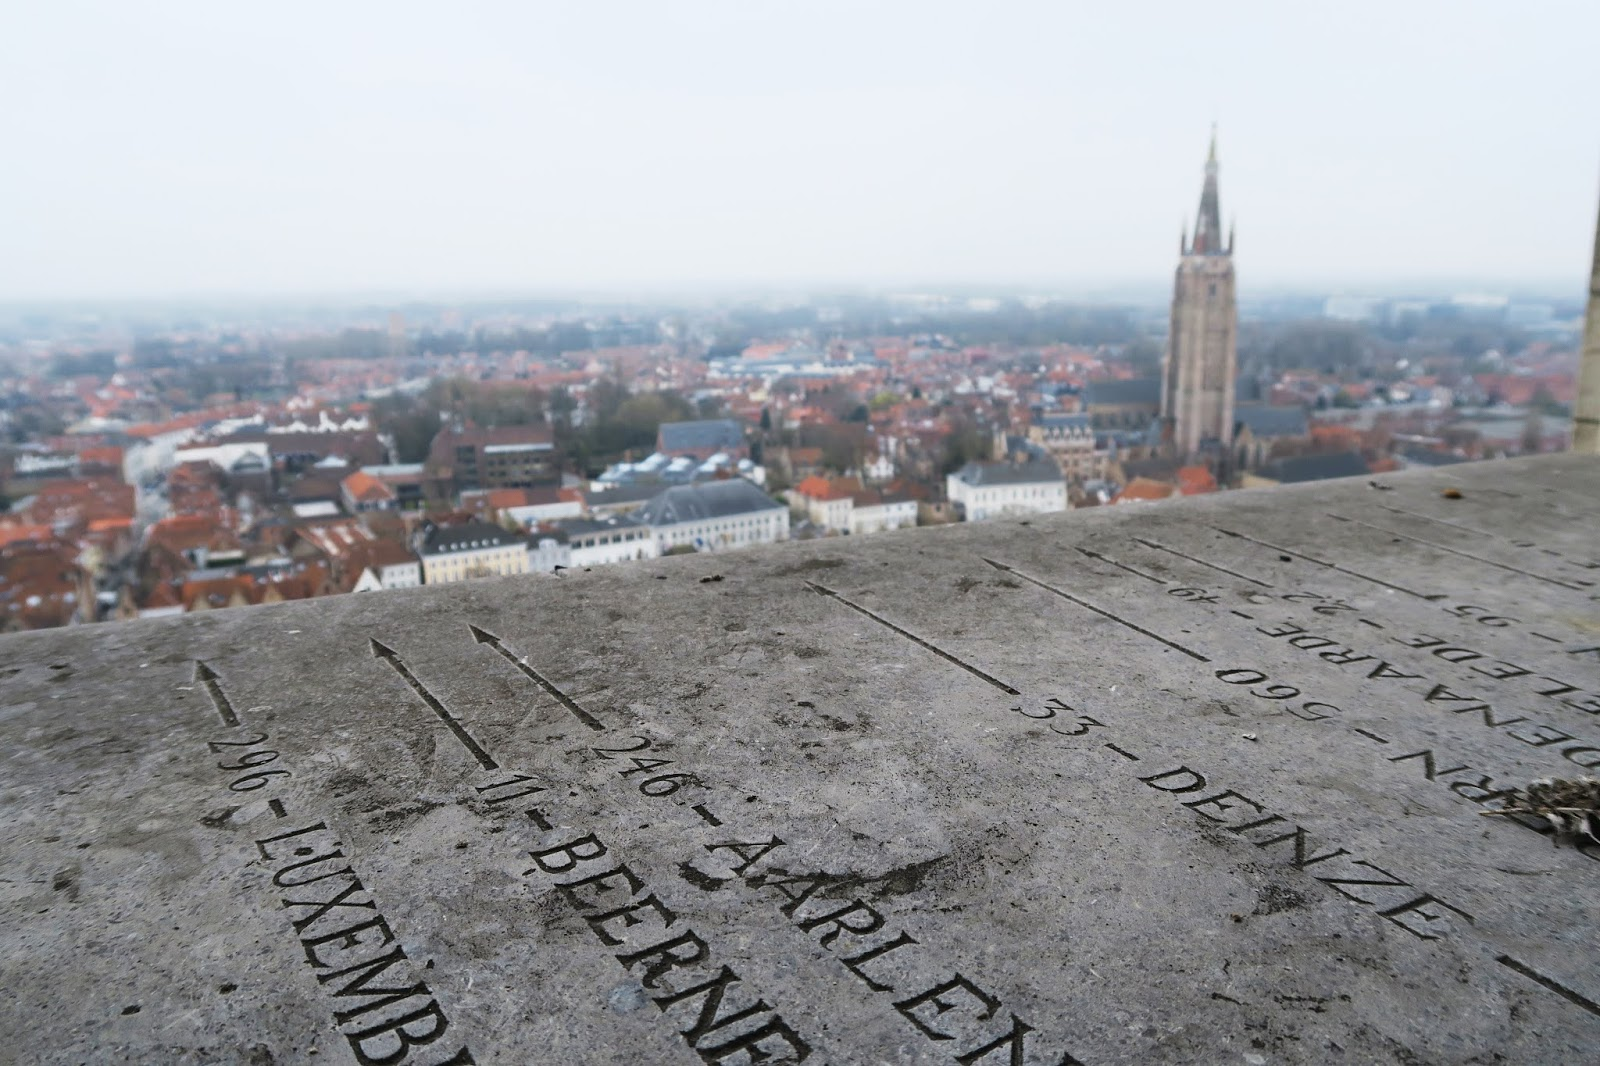 The view from the top of the Belfry of Bruges, looking out across the city.